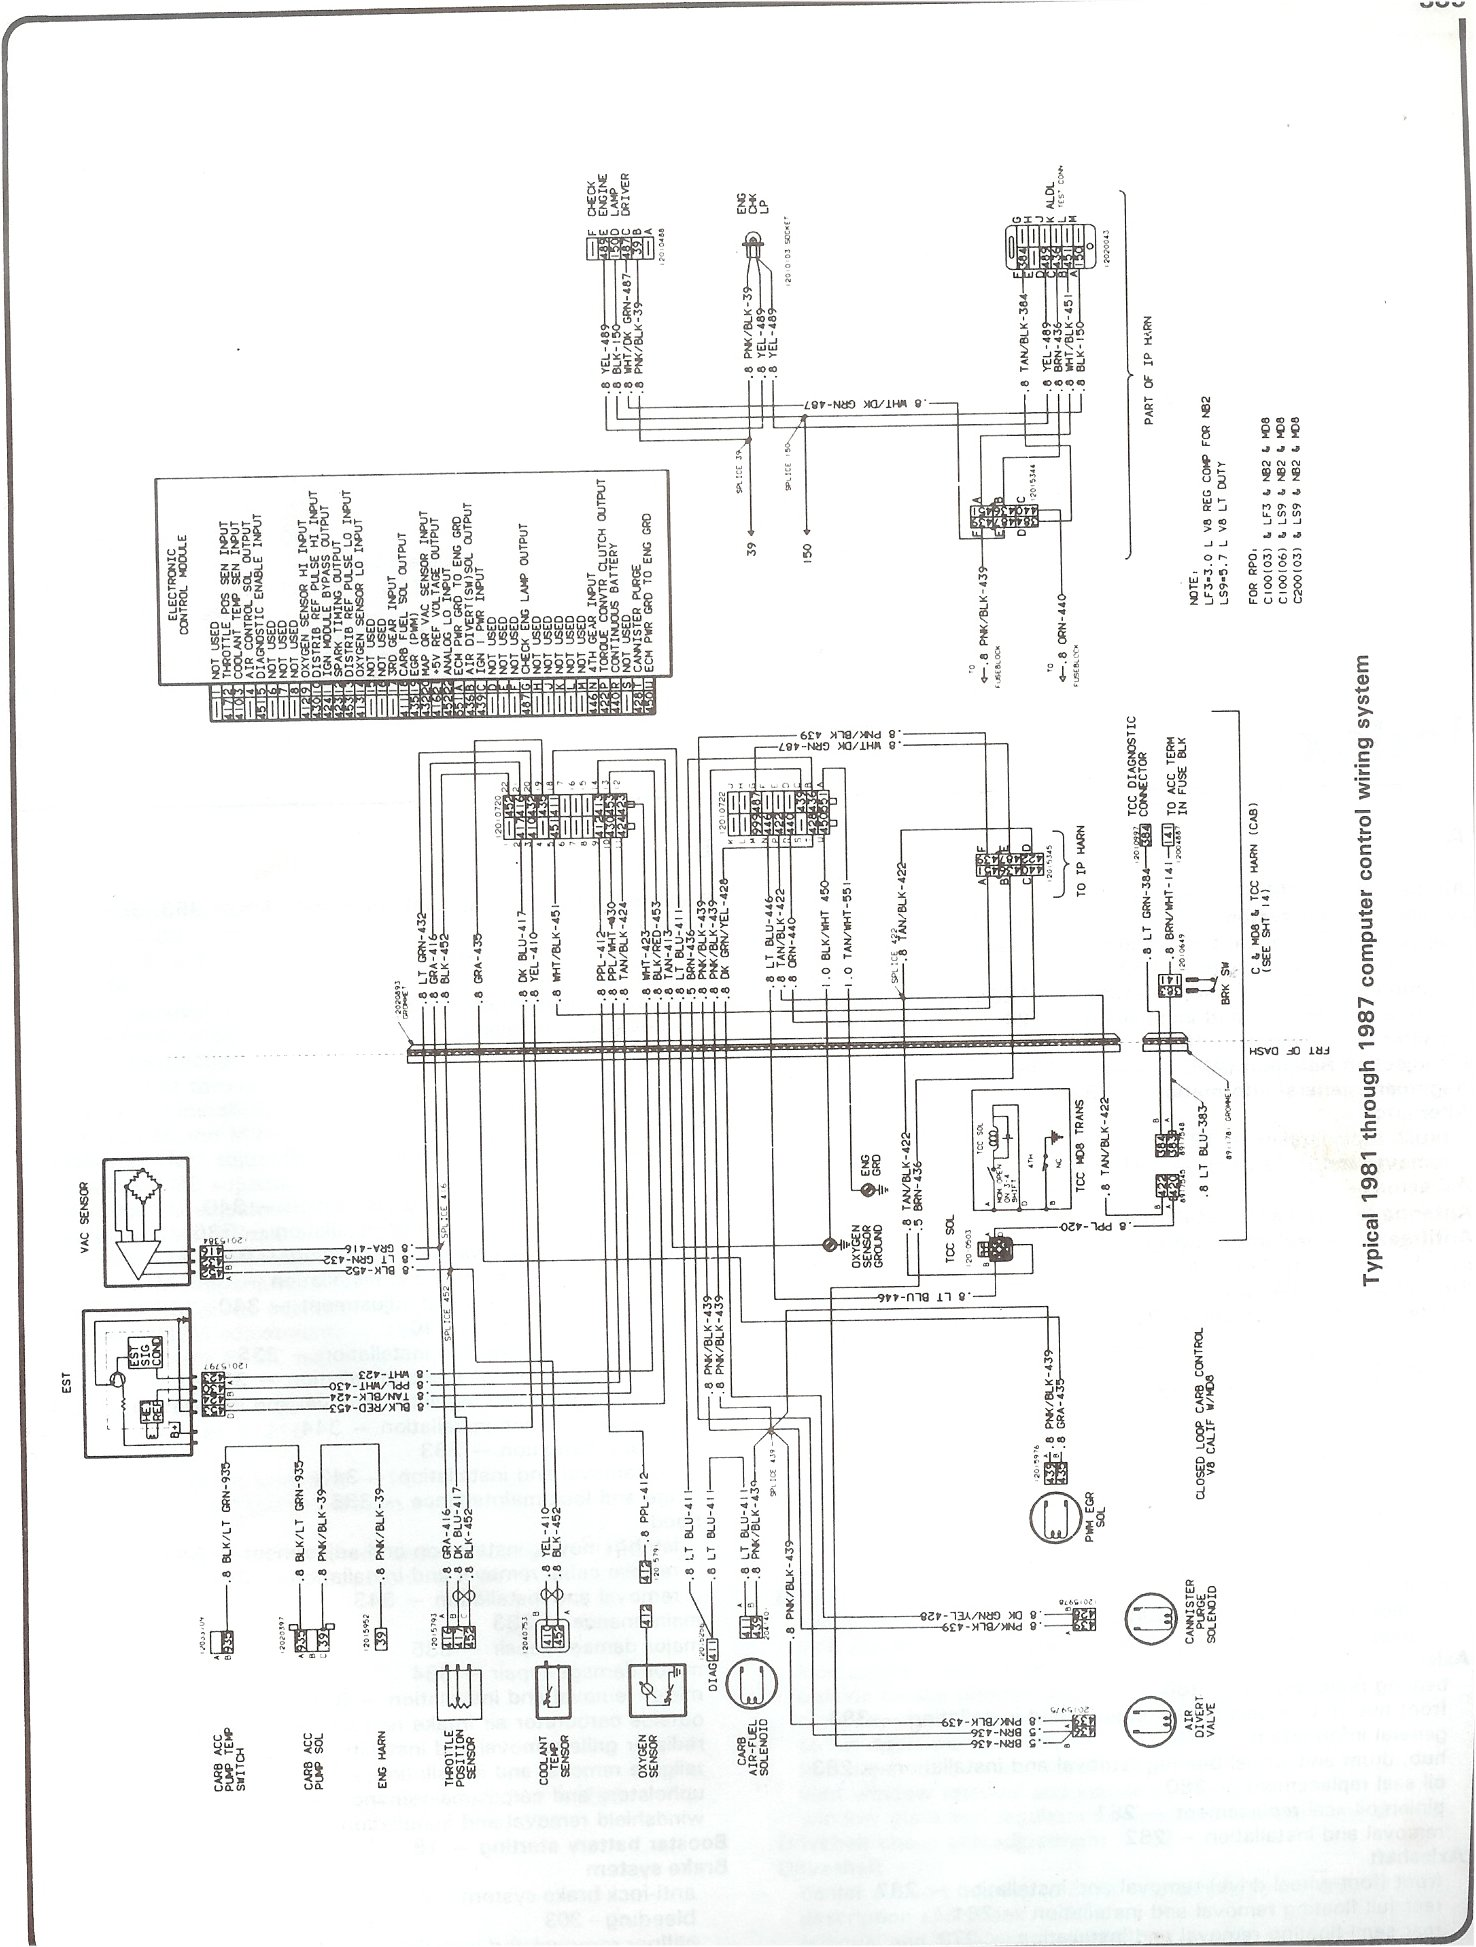 1979 gmc truck wiring general wiring diagram information u2022 rh velvetfive co uk gm wiring harness color codes gmc wiring harness